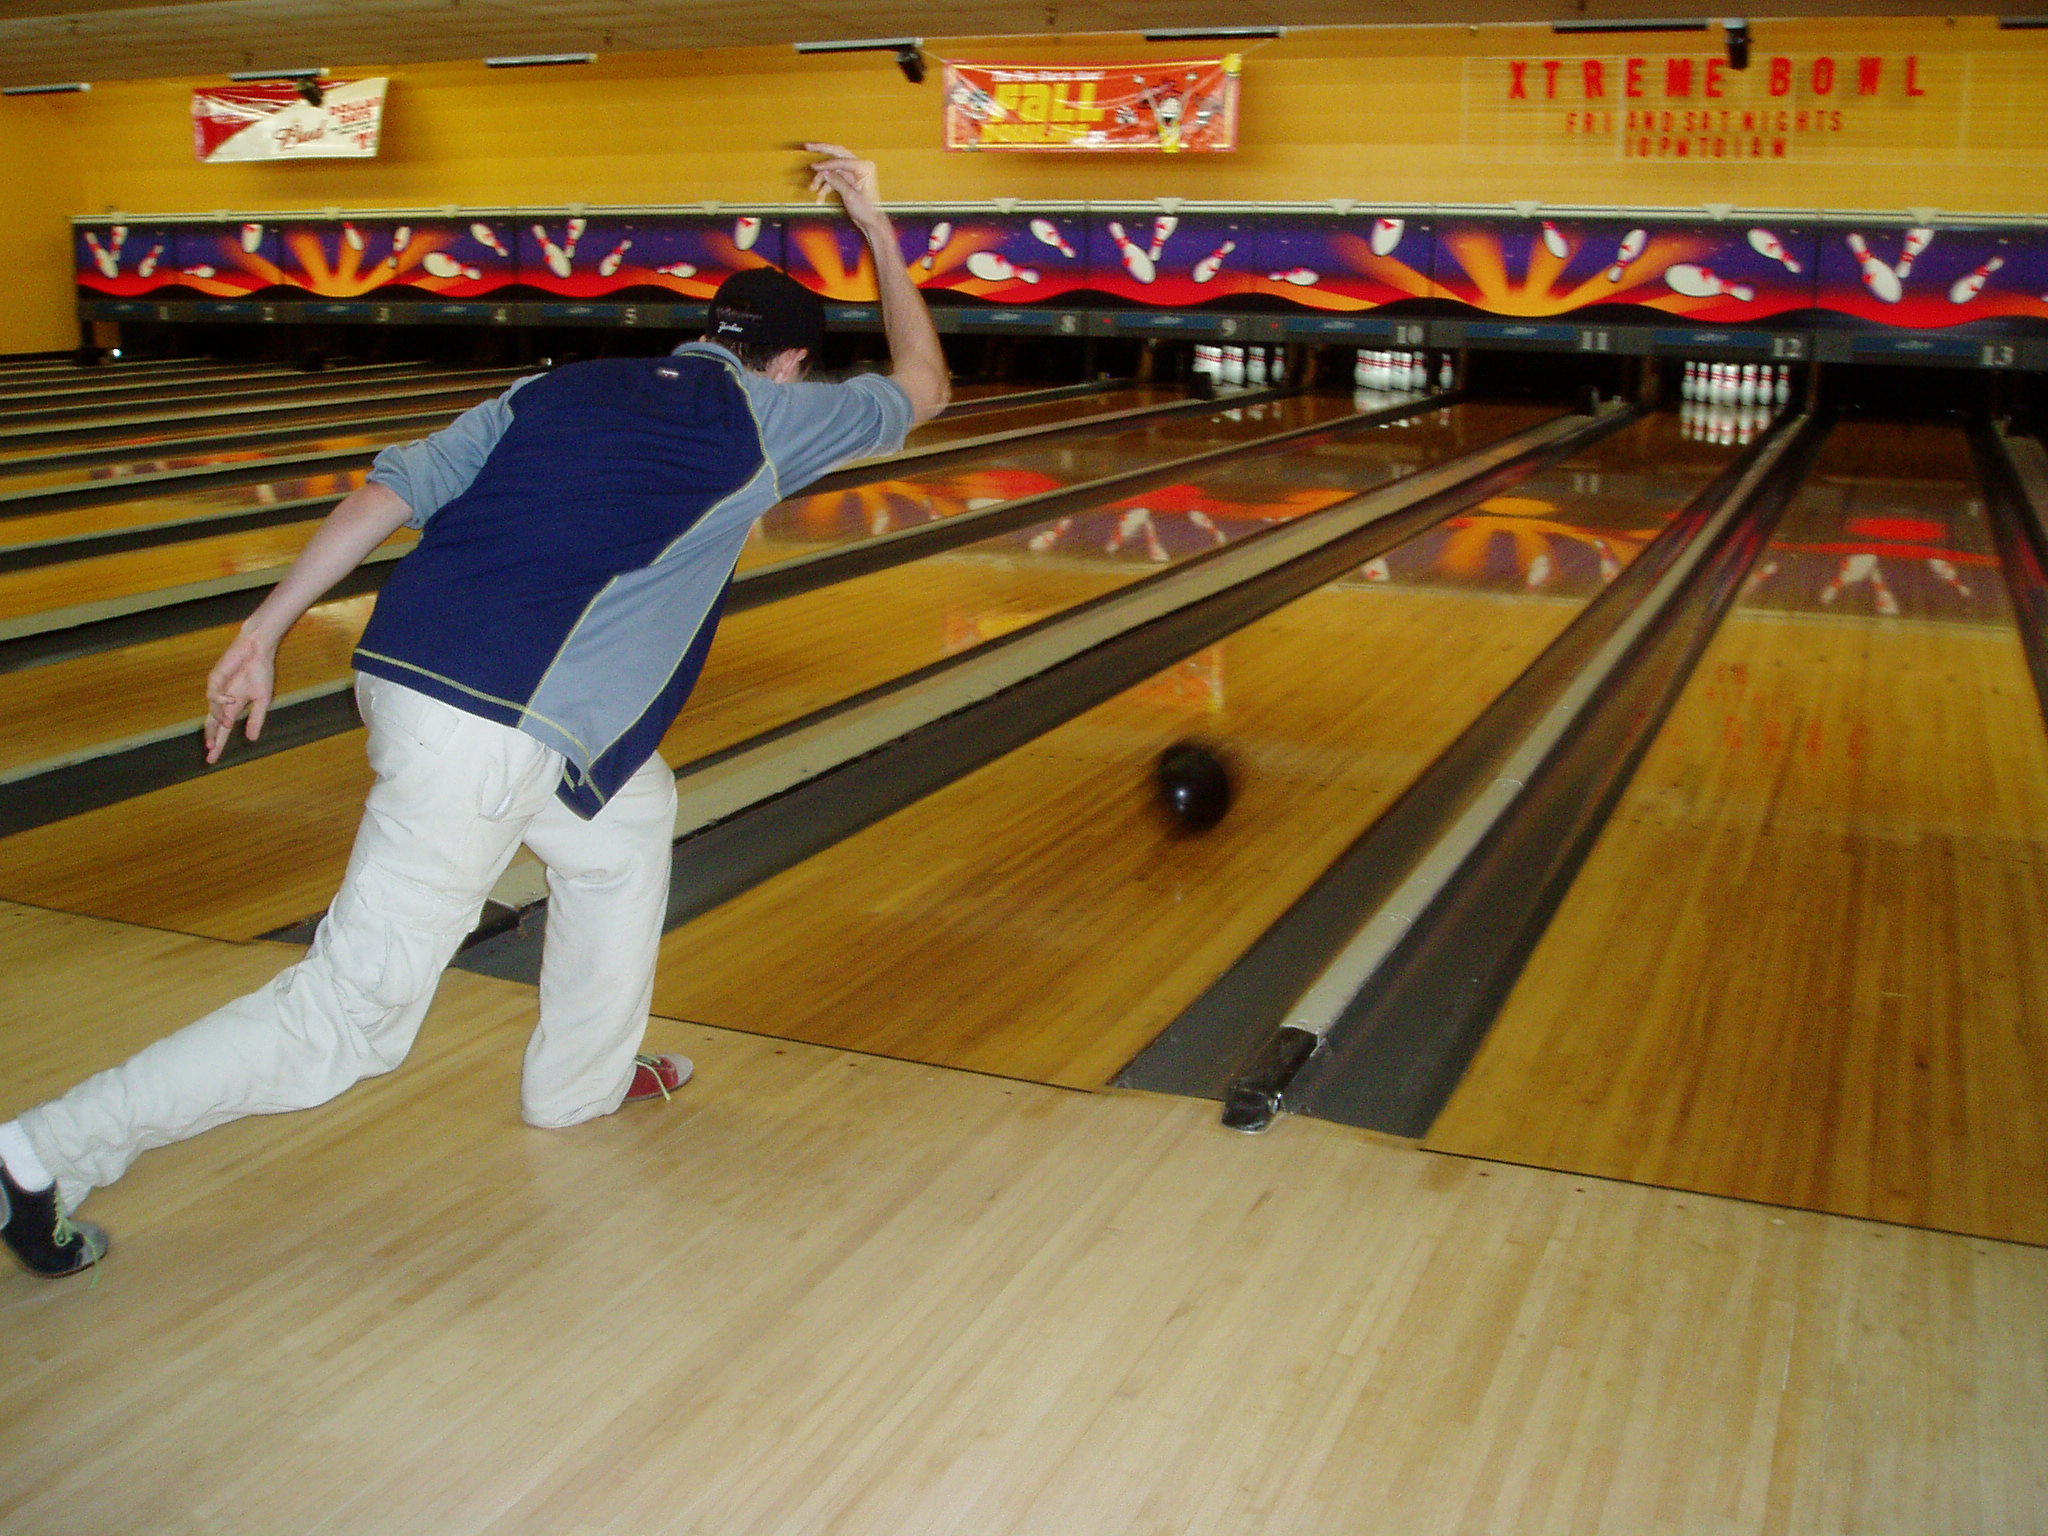 Bowling Pictures